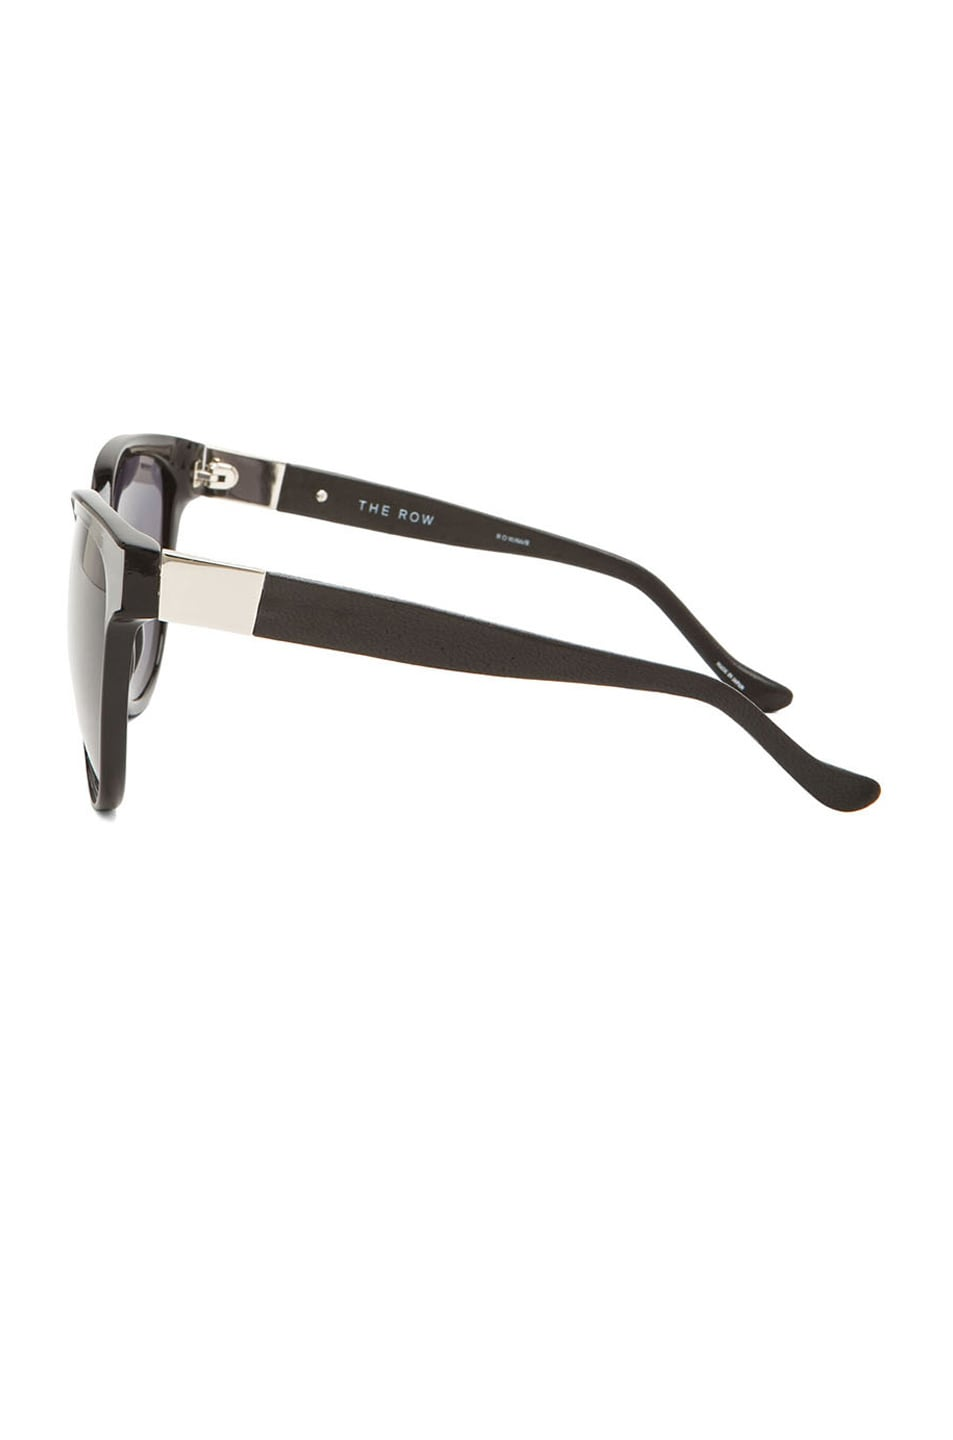 Image 3 of The Row Cat Eye Sunglasses in Black